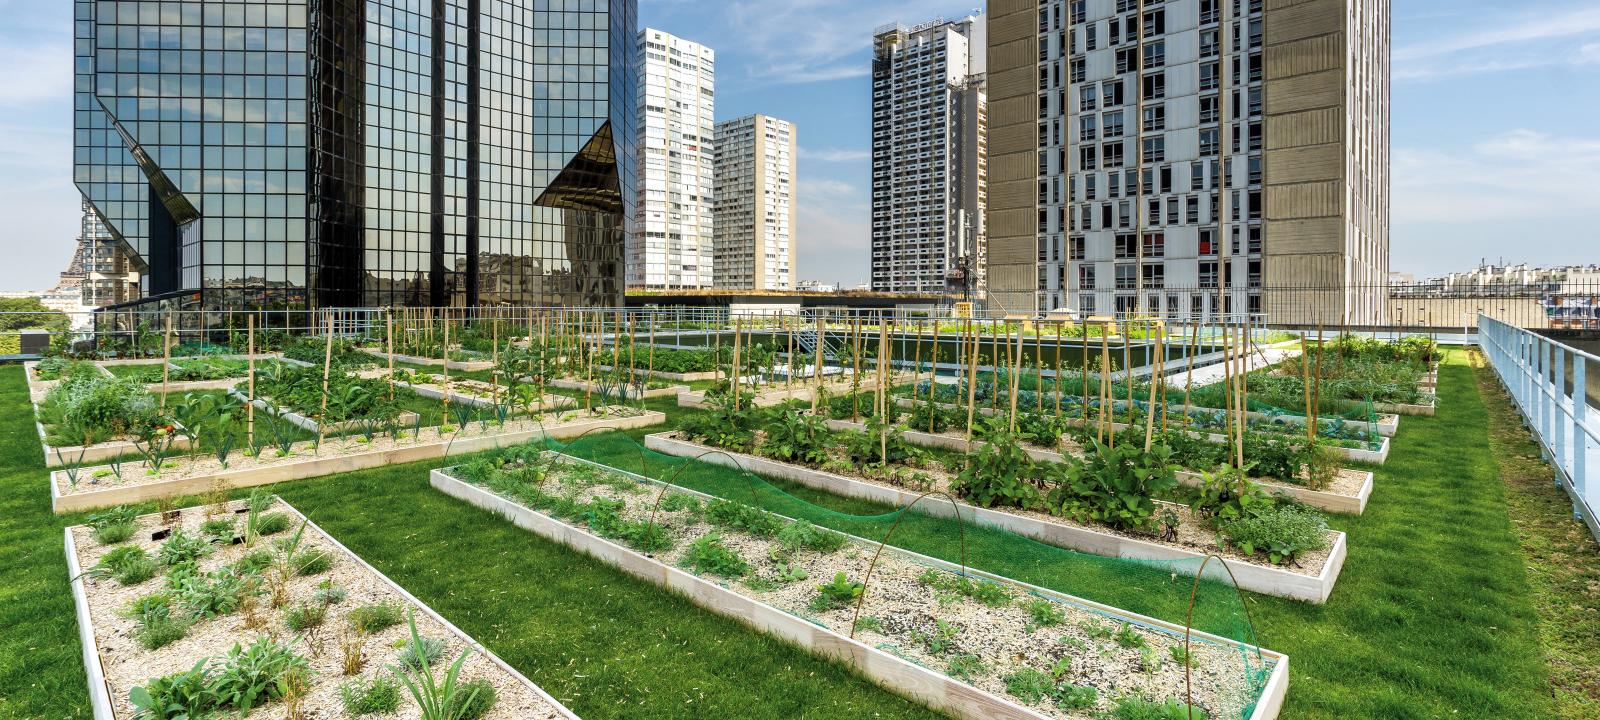 Urban Rooftop Farming Zinco Green Roof Systems Uk